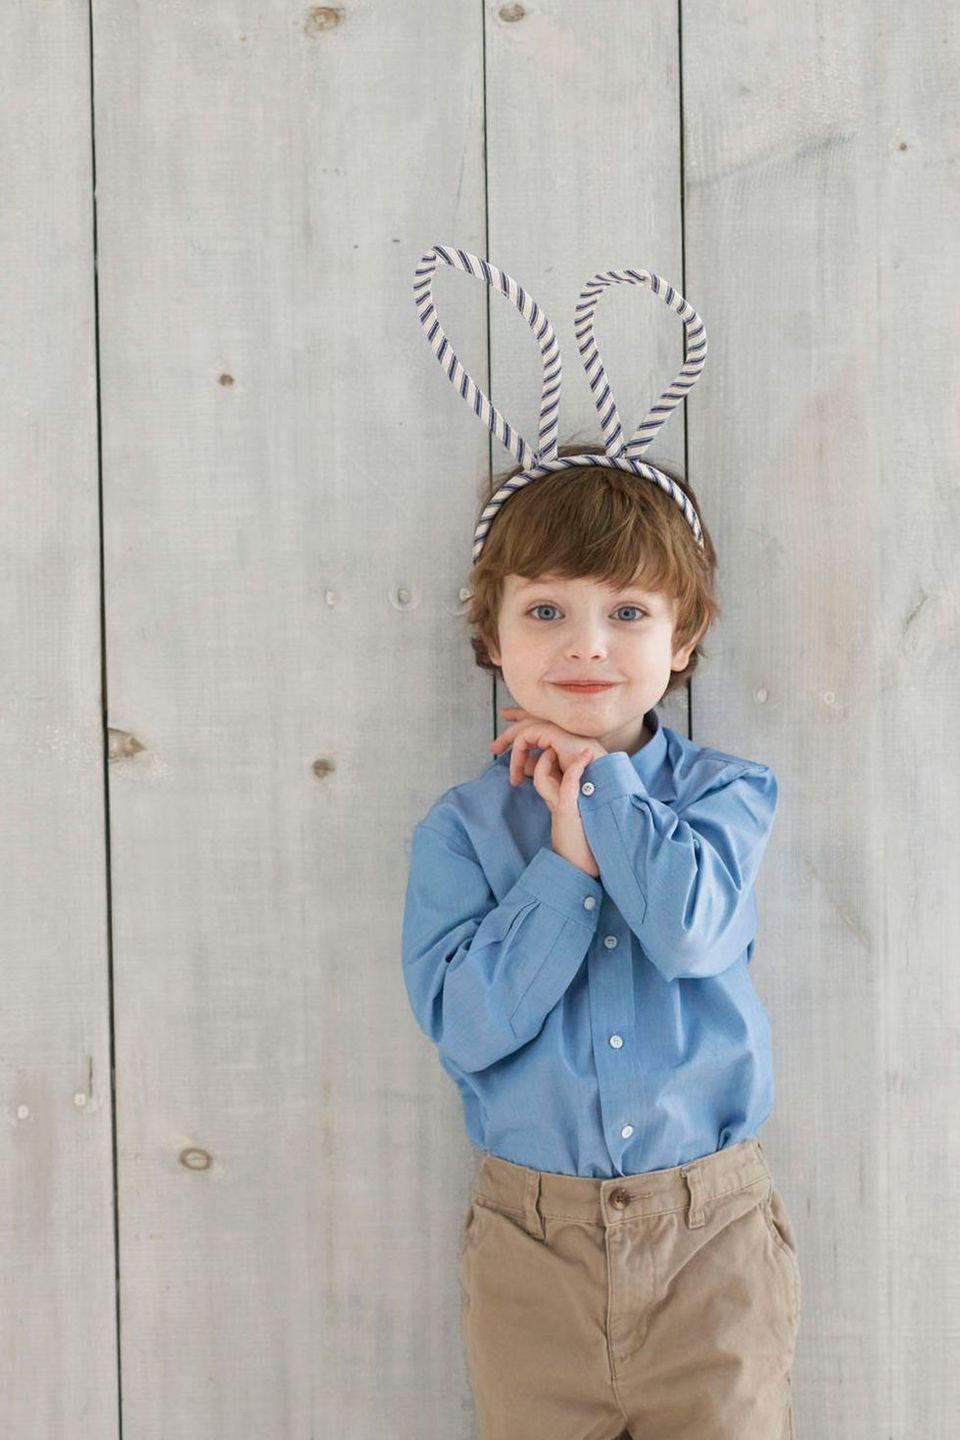 """<p>These bunny ears might be for Easter, but your kid will save them for dress up time year round. </p><p><strong><em>Get the tutorial at <a href=""""https://www.countryliving.com/diy-crafts/how-to/g1111/easter-crafts/?slide=43"""" rel=""""nofollow noopener"""" target=""""_blank"""" data-ylk=""""slk:Country Living"""" class=""""link rapid-noclick-resp"""">Country Living</a>. </em></strong></p>"""